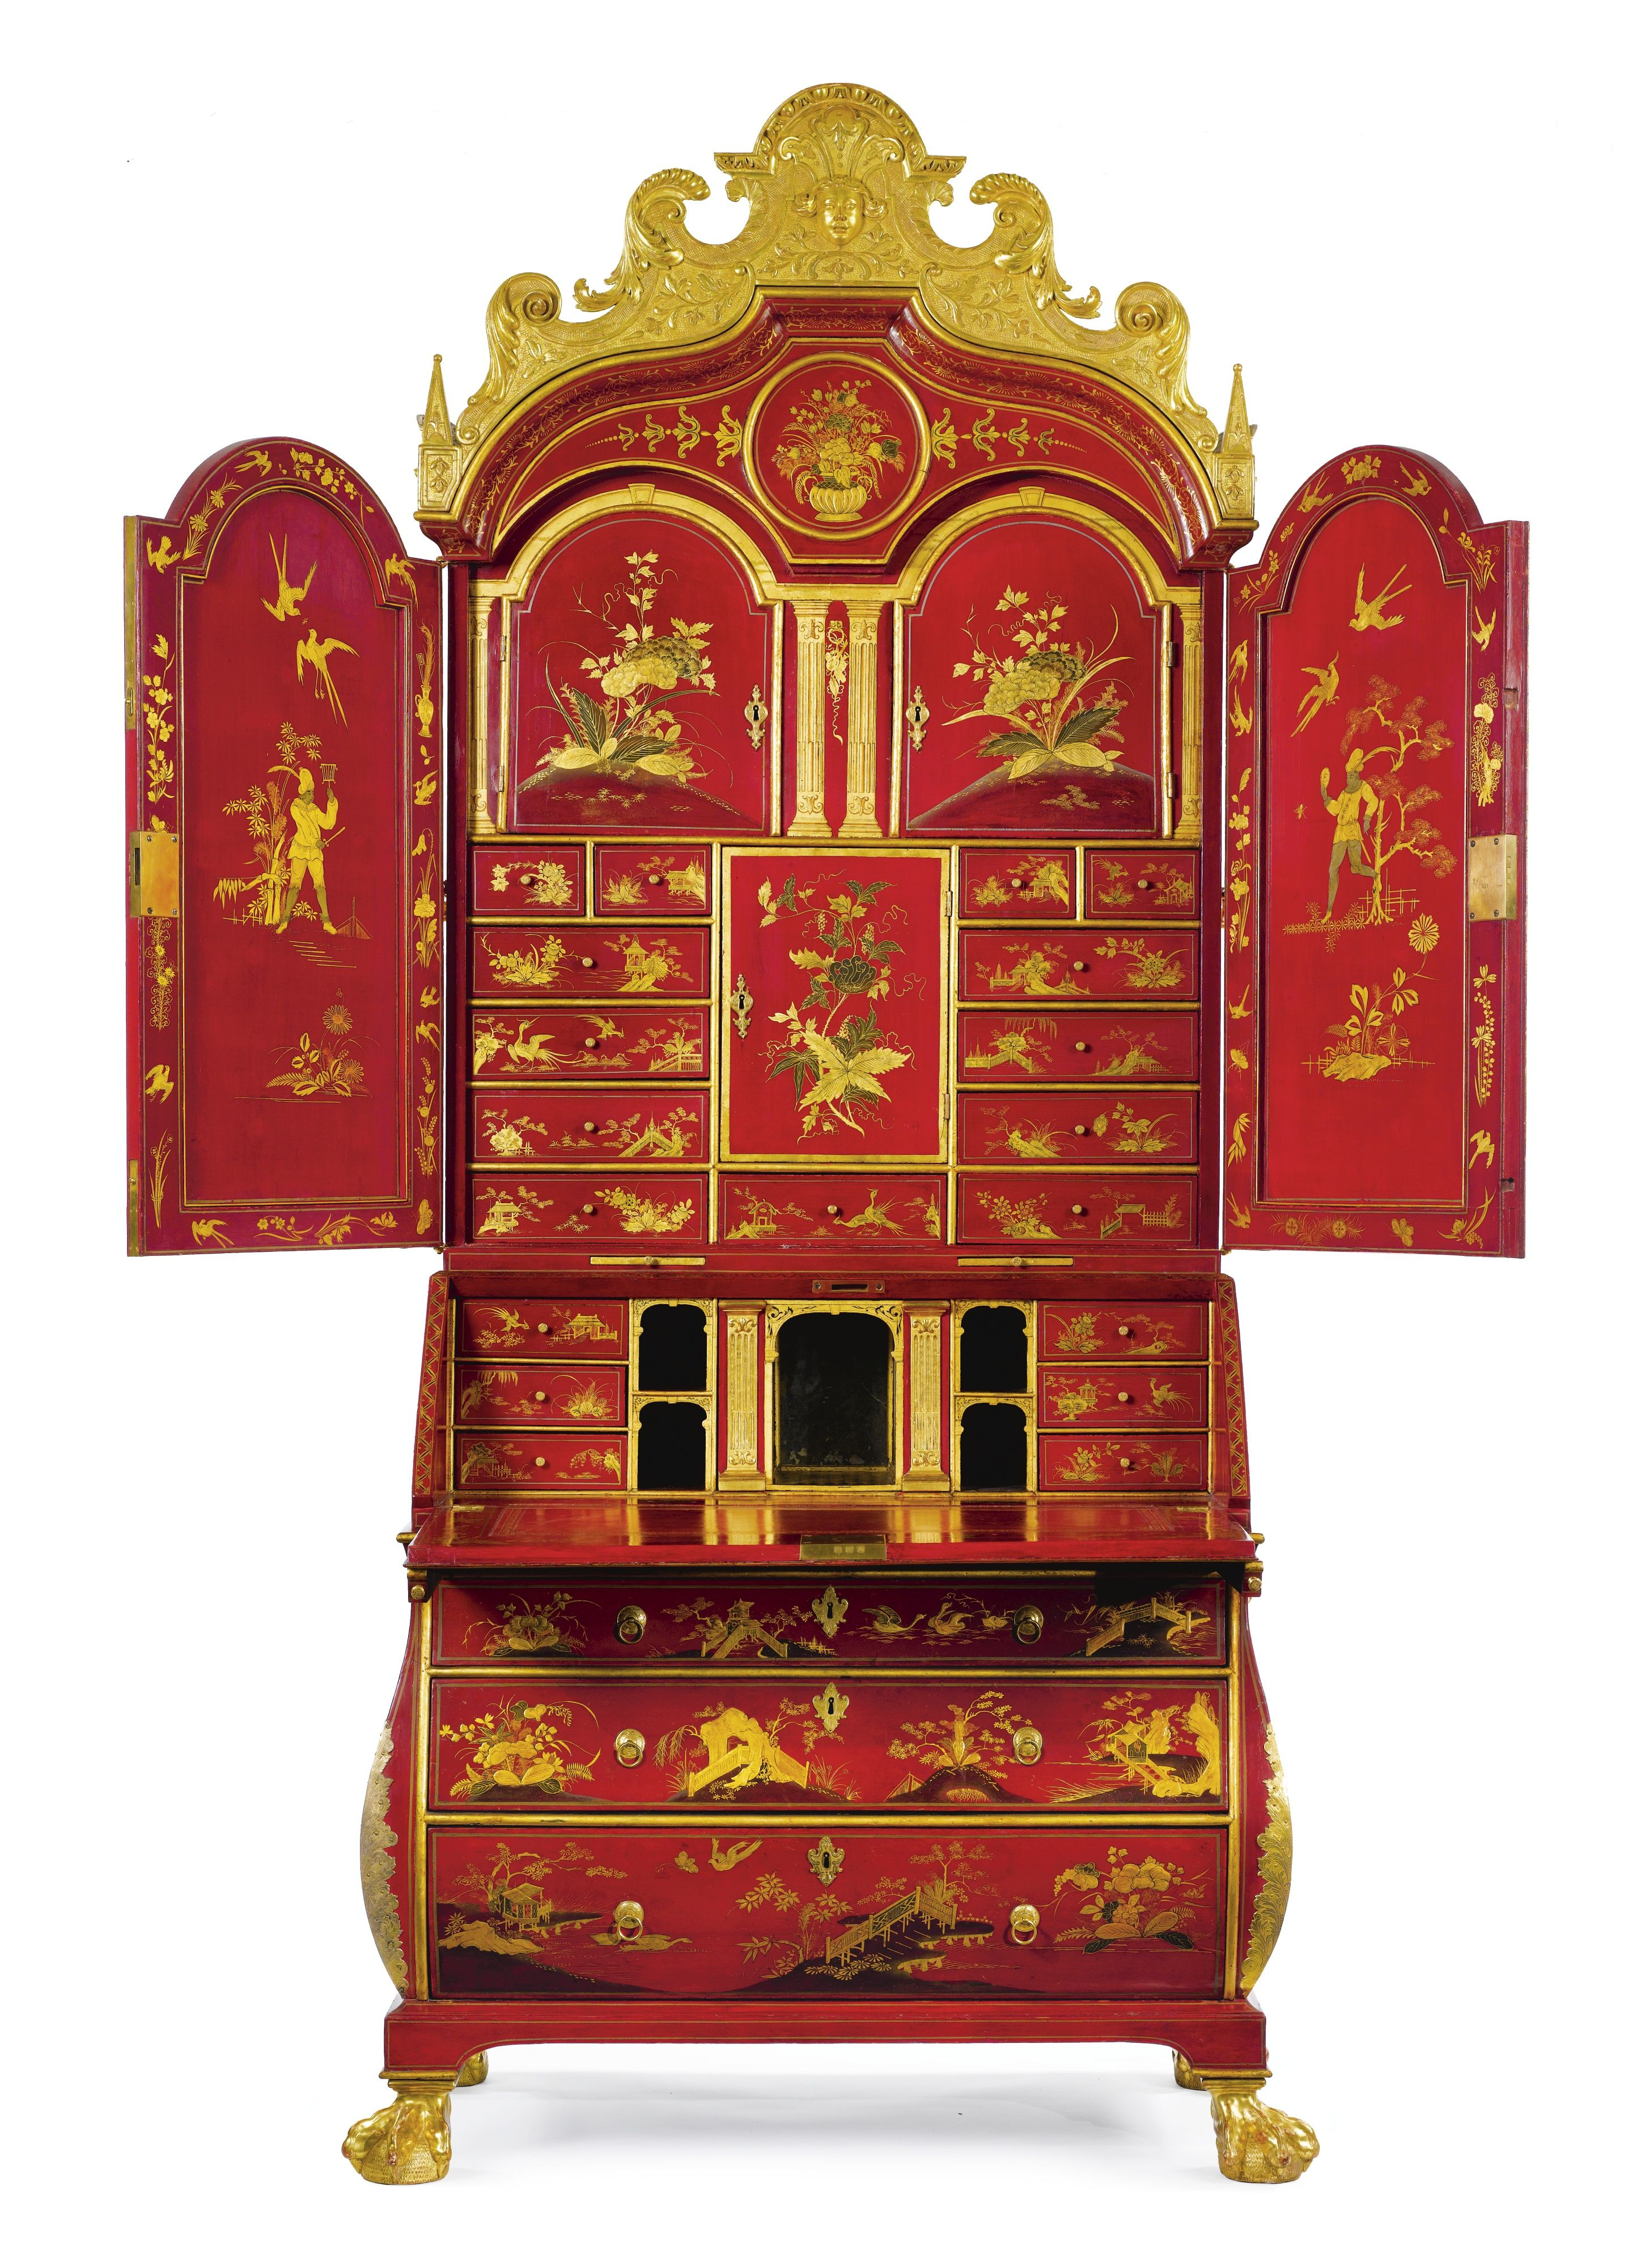 C1730 A Rare And Important German Baroque Parcel Gilt And Scarlet Japanned Bureau Cabinet Dr Painting Antique Furniture Chinoiserie Furniture Lacquer Furniture